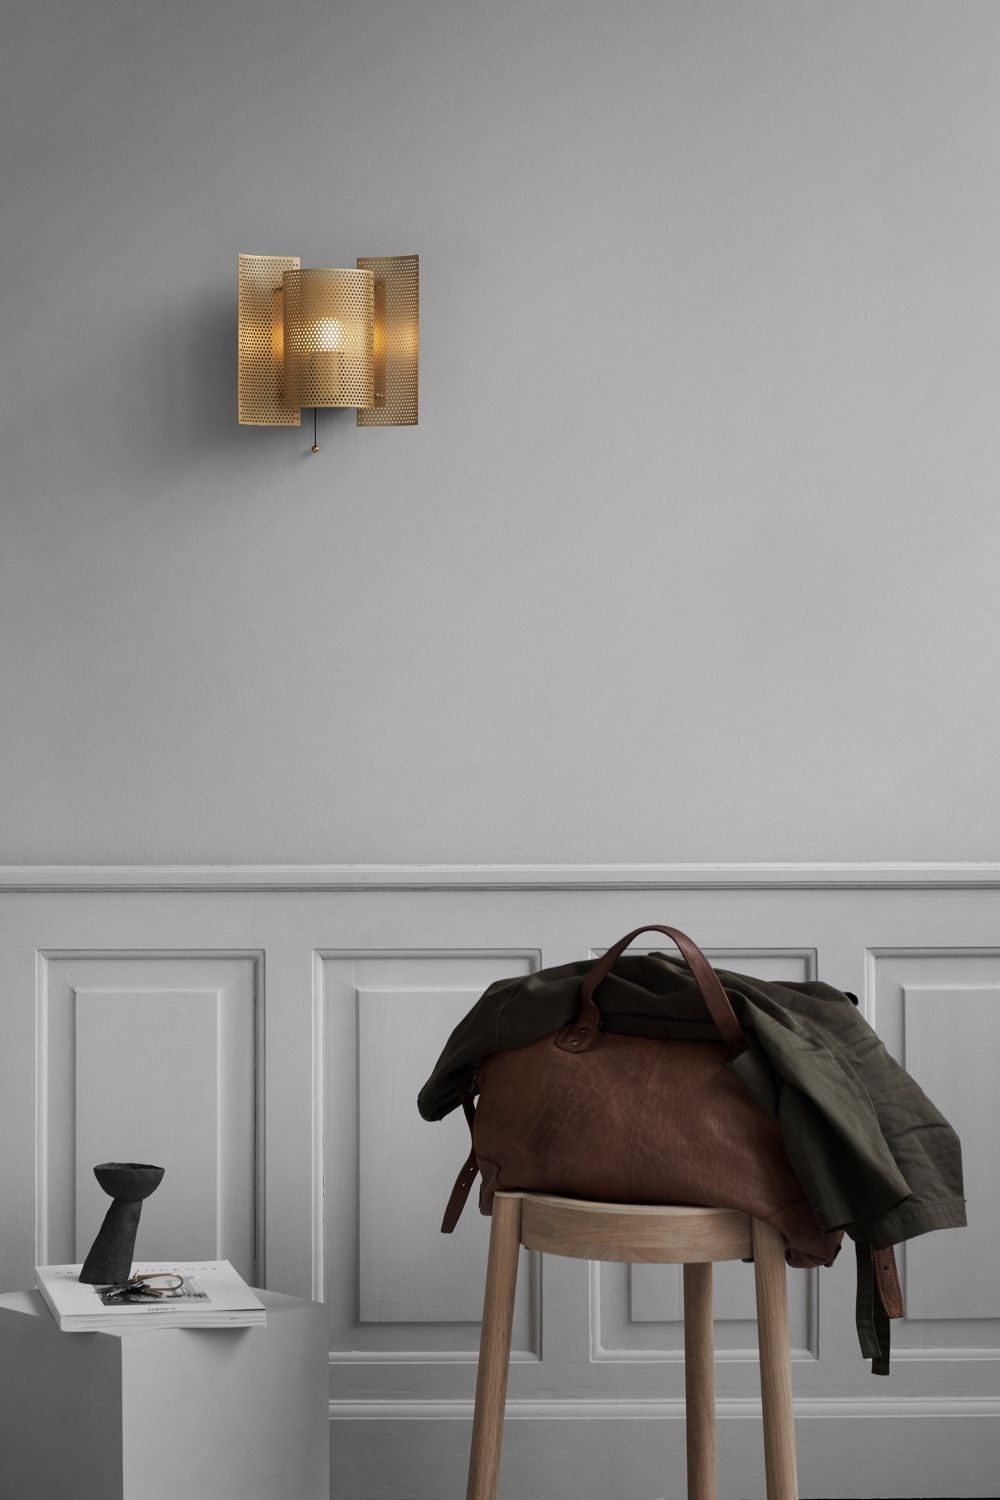 Northern Butterfly Wall Light - Perforated - Brass - On a wall above wall paneling